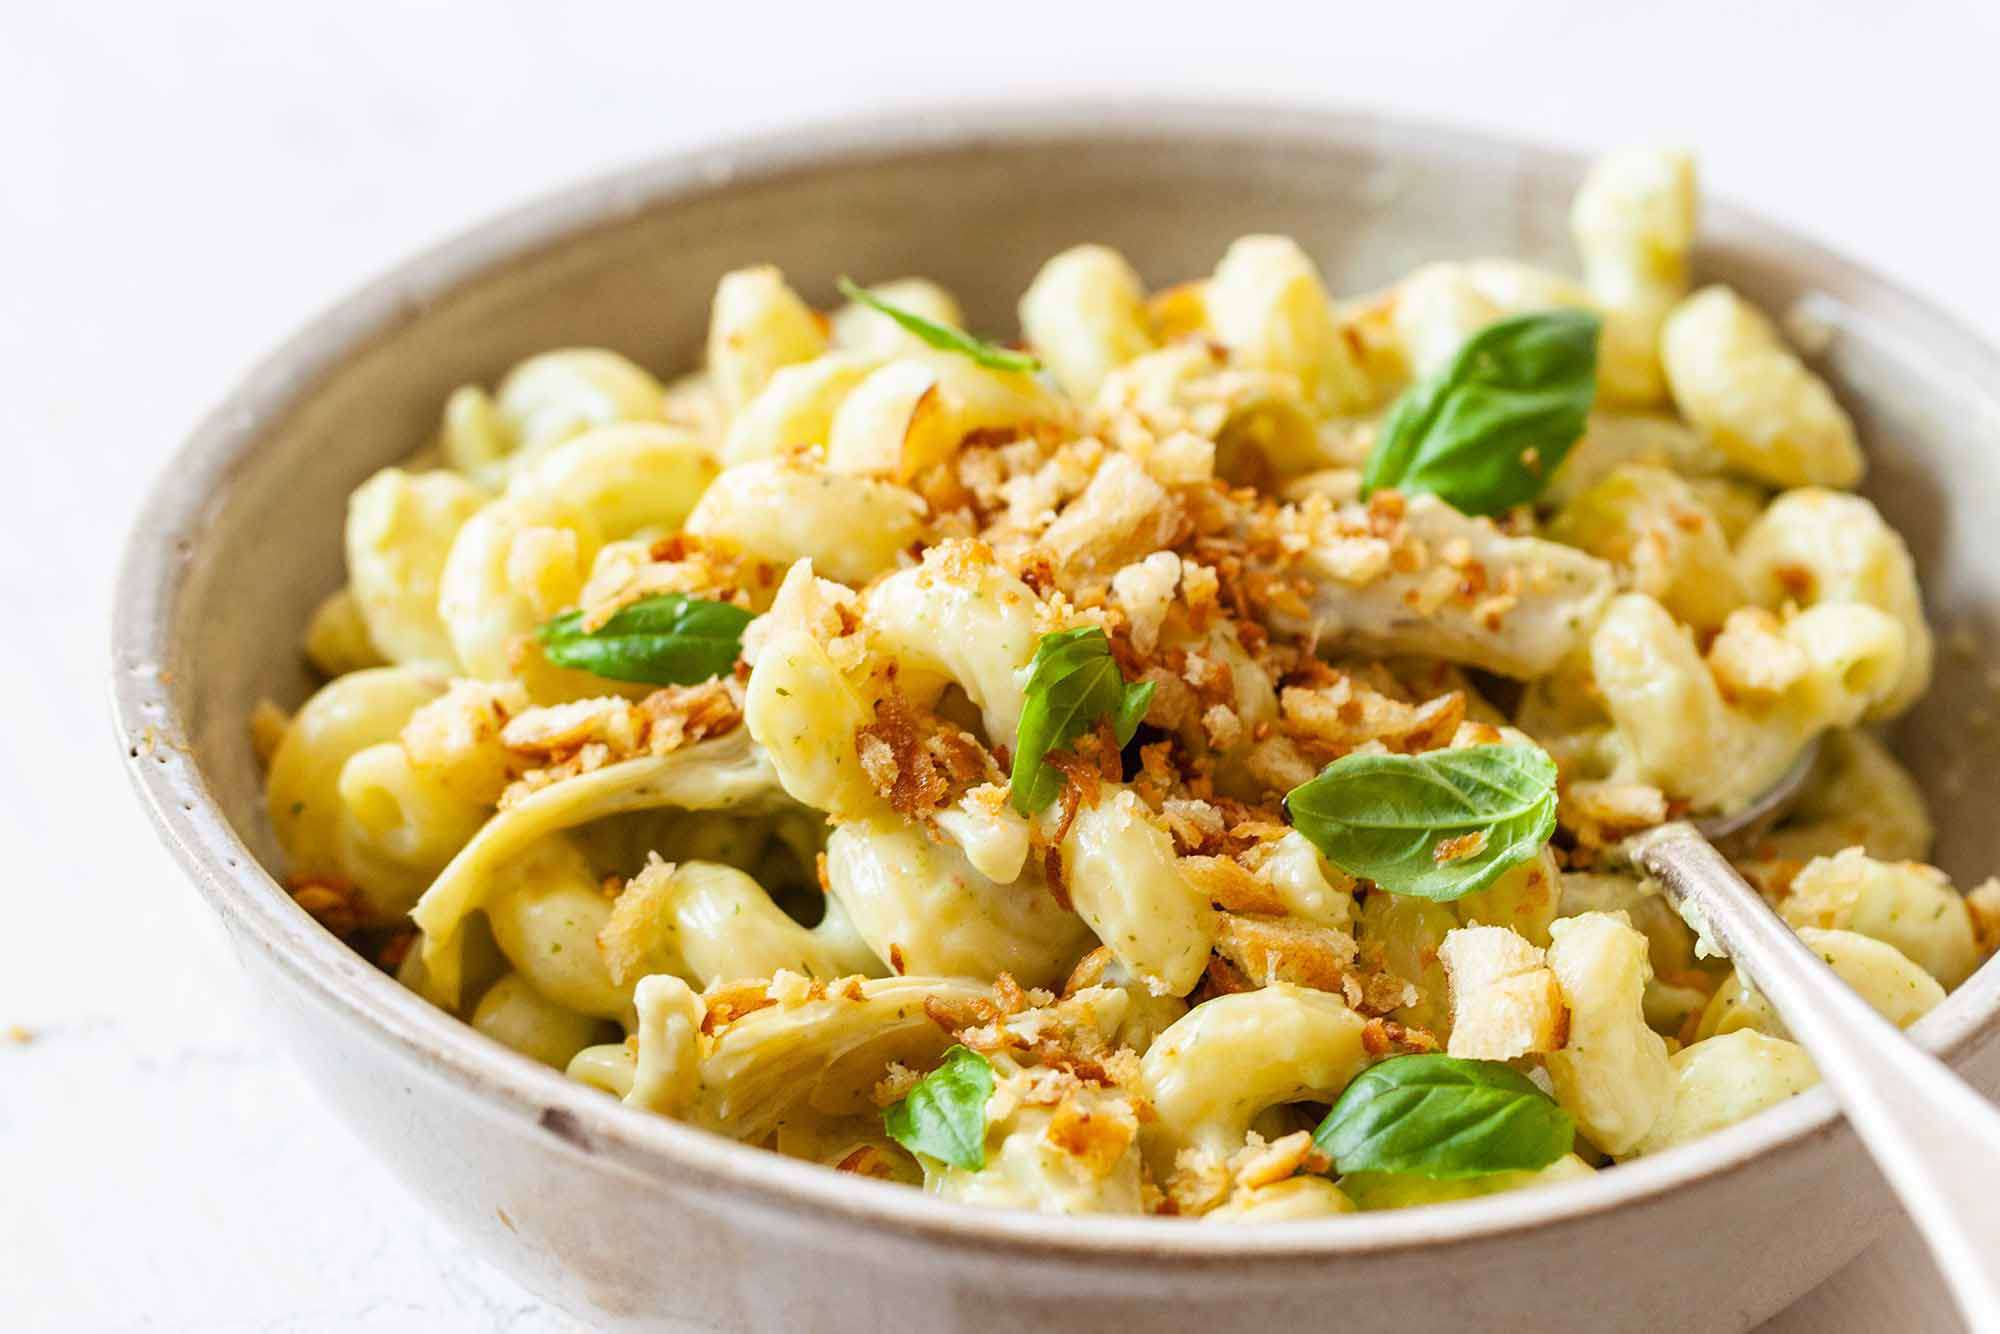 Mac and Cheese Add-Ins - mac and cheese in bowl with basil leaves and breadcrumbs on top